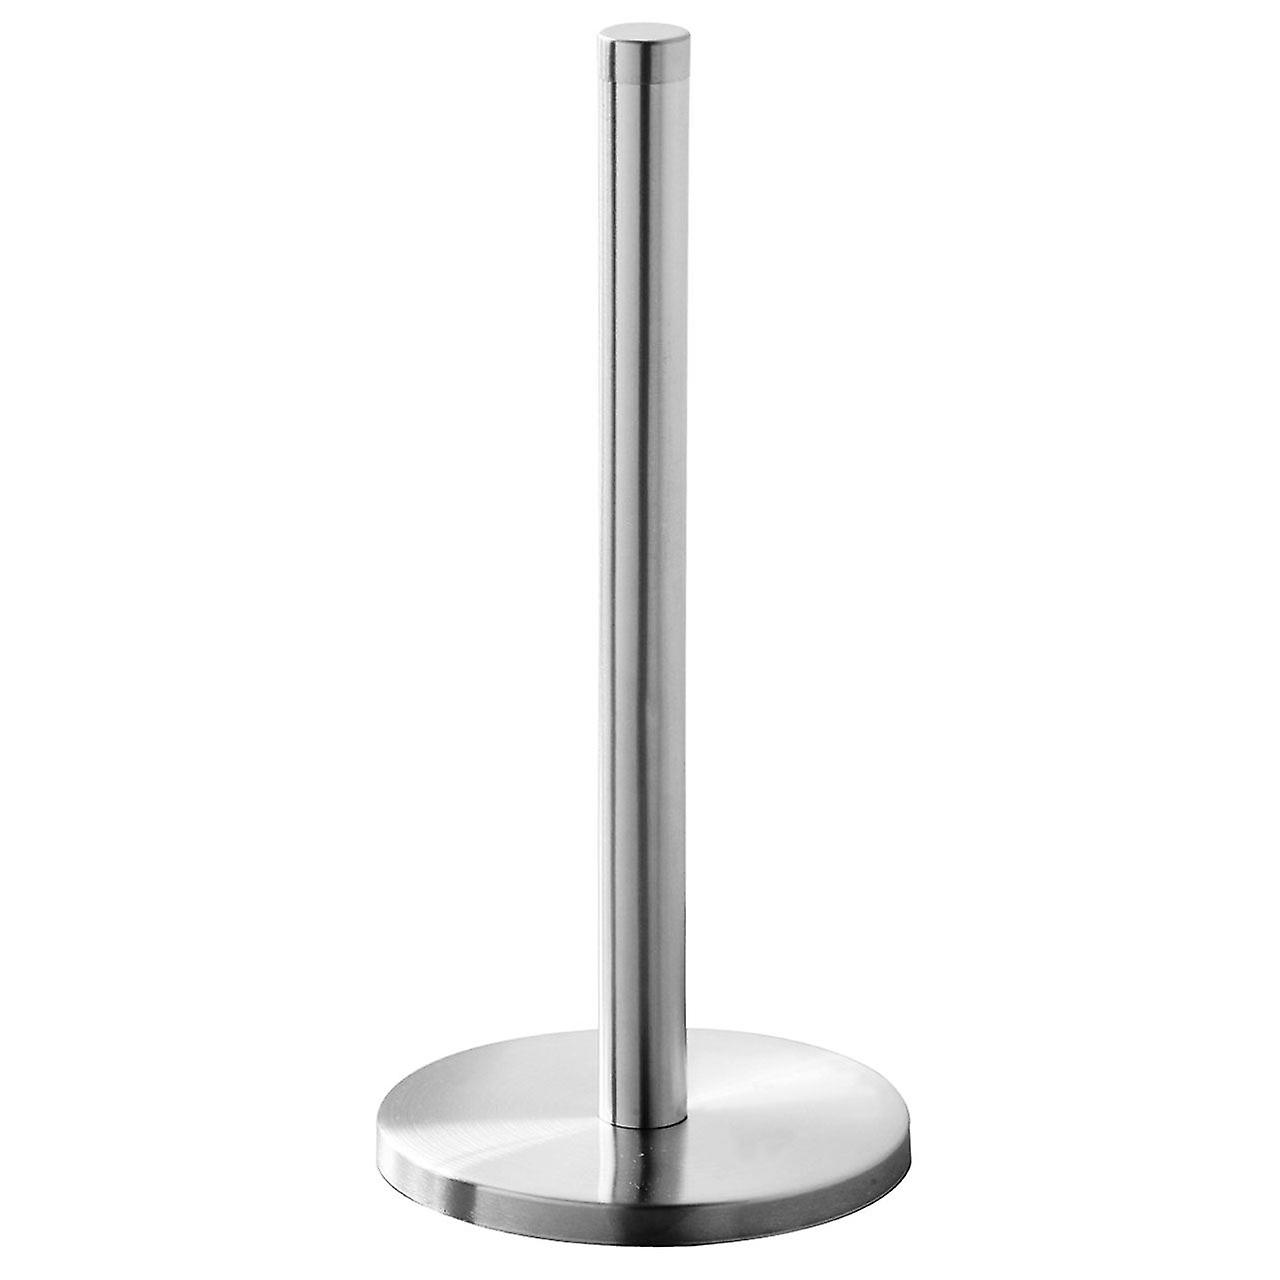 Kitchen Towel Roll Holder/ Pole, Brushed Stainless Steel